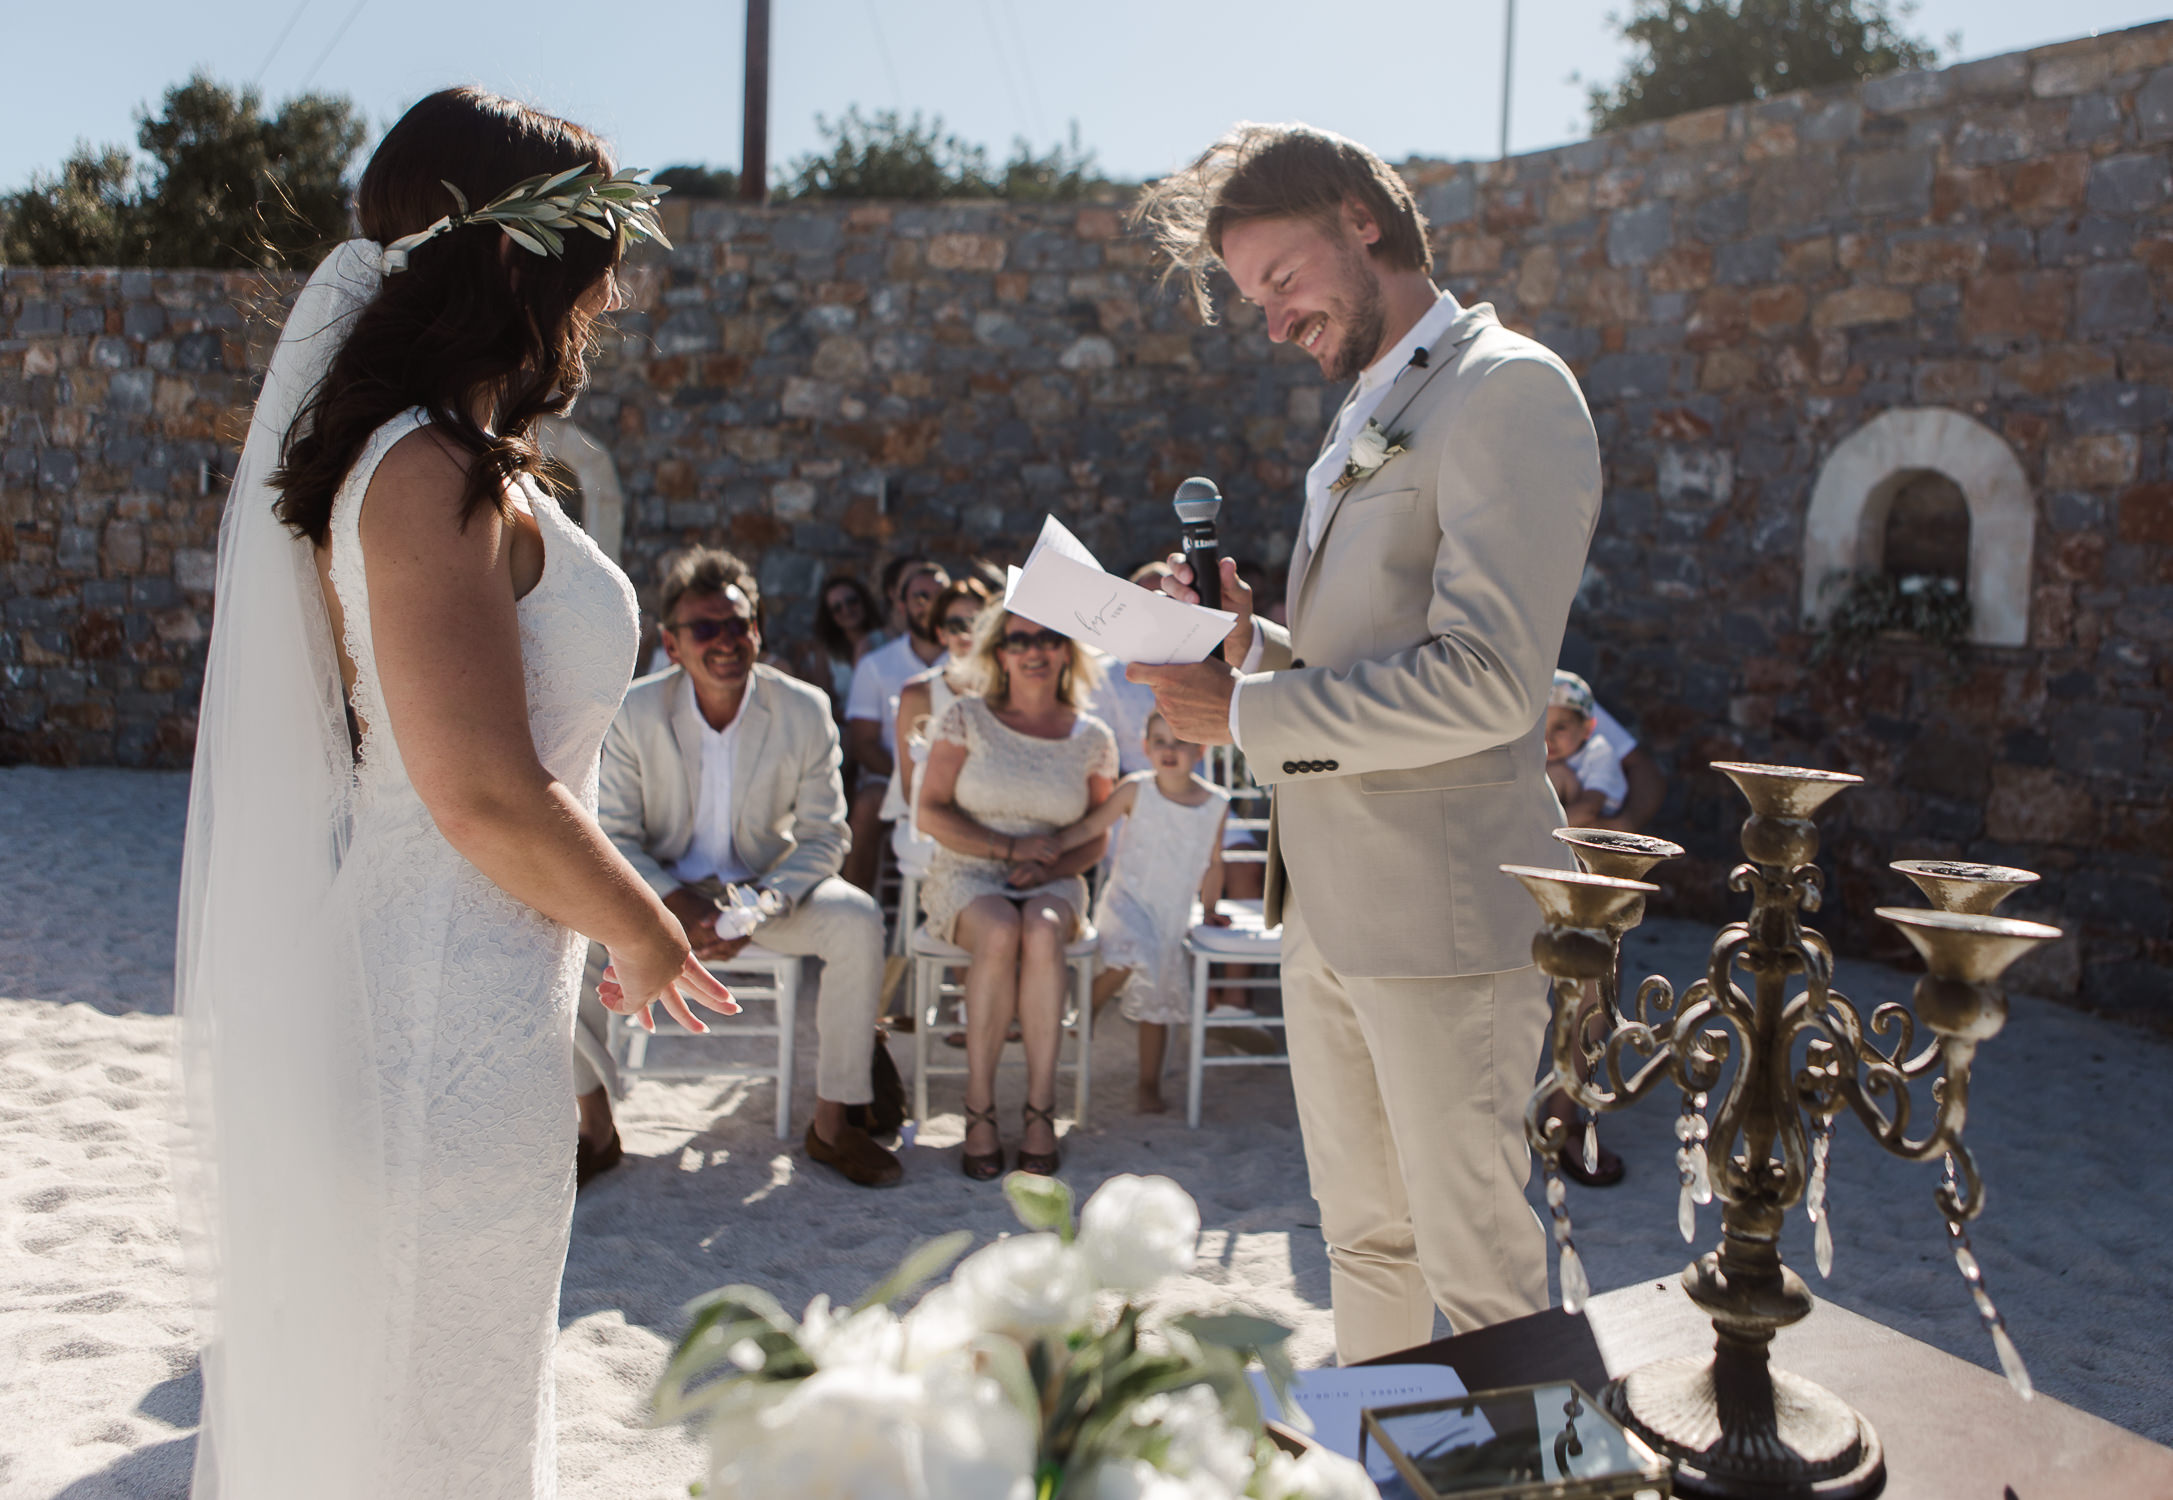 Fotomagoria - Elounda - Crete - Greece Wedding 159.jpg